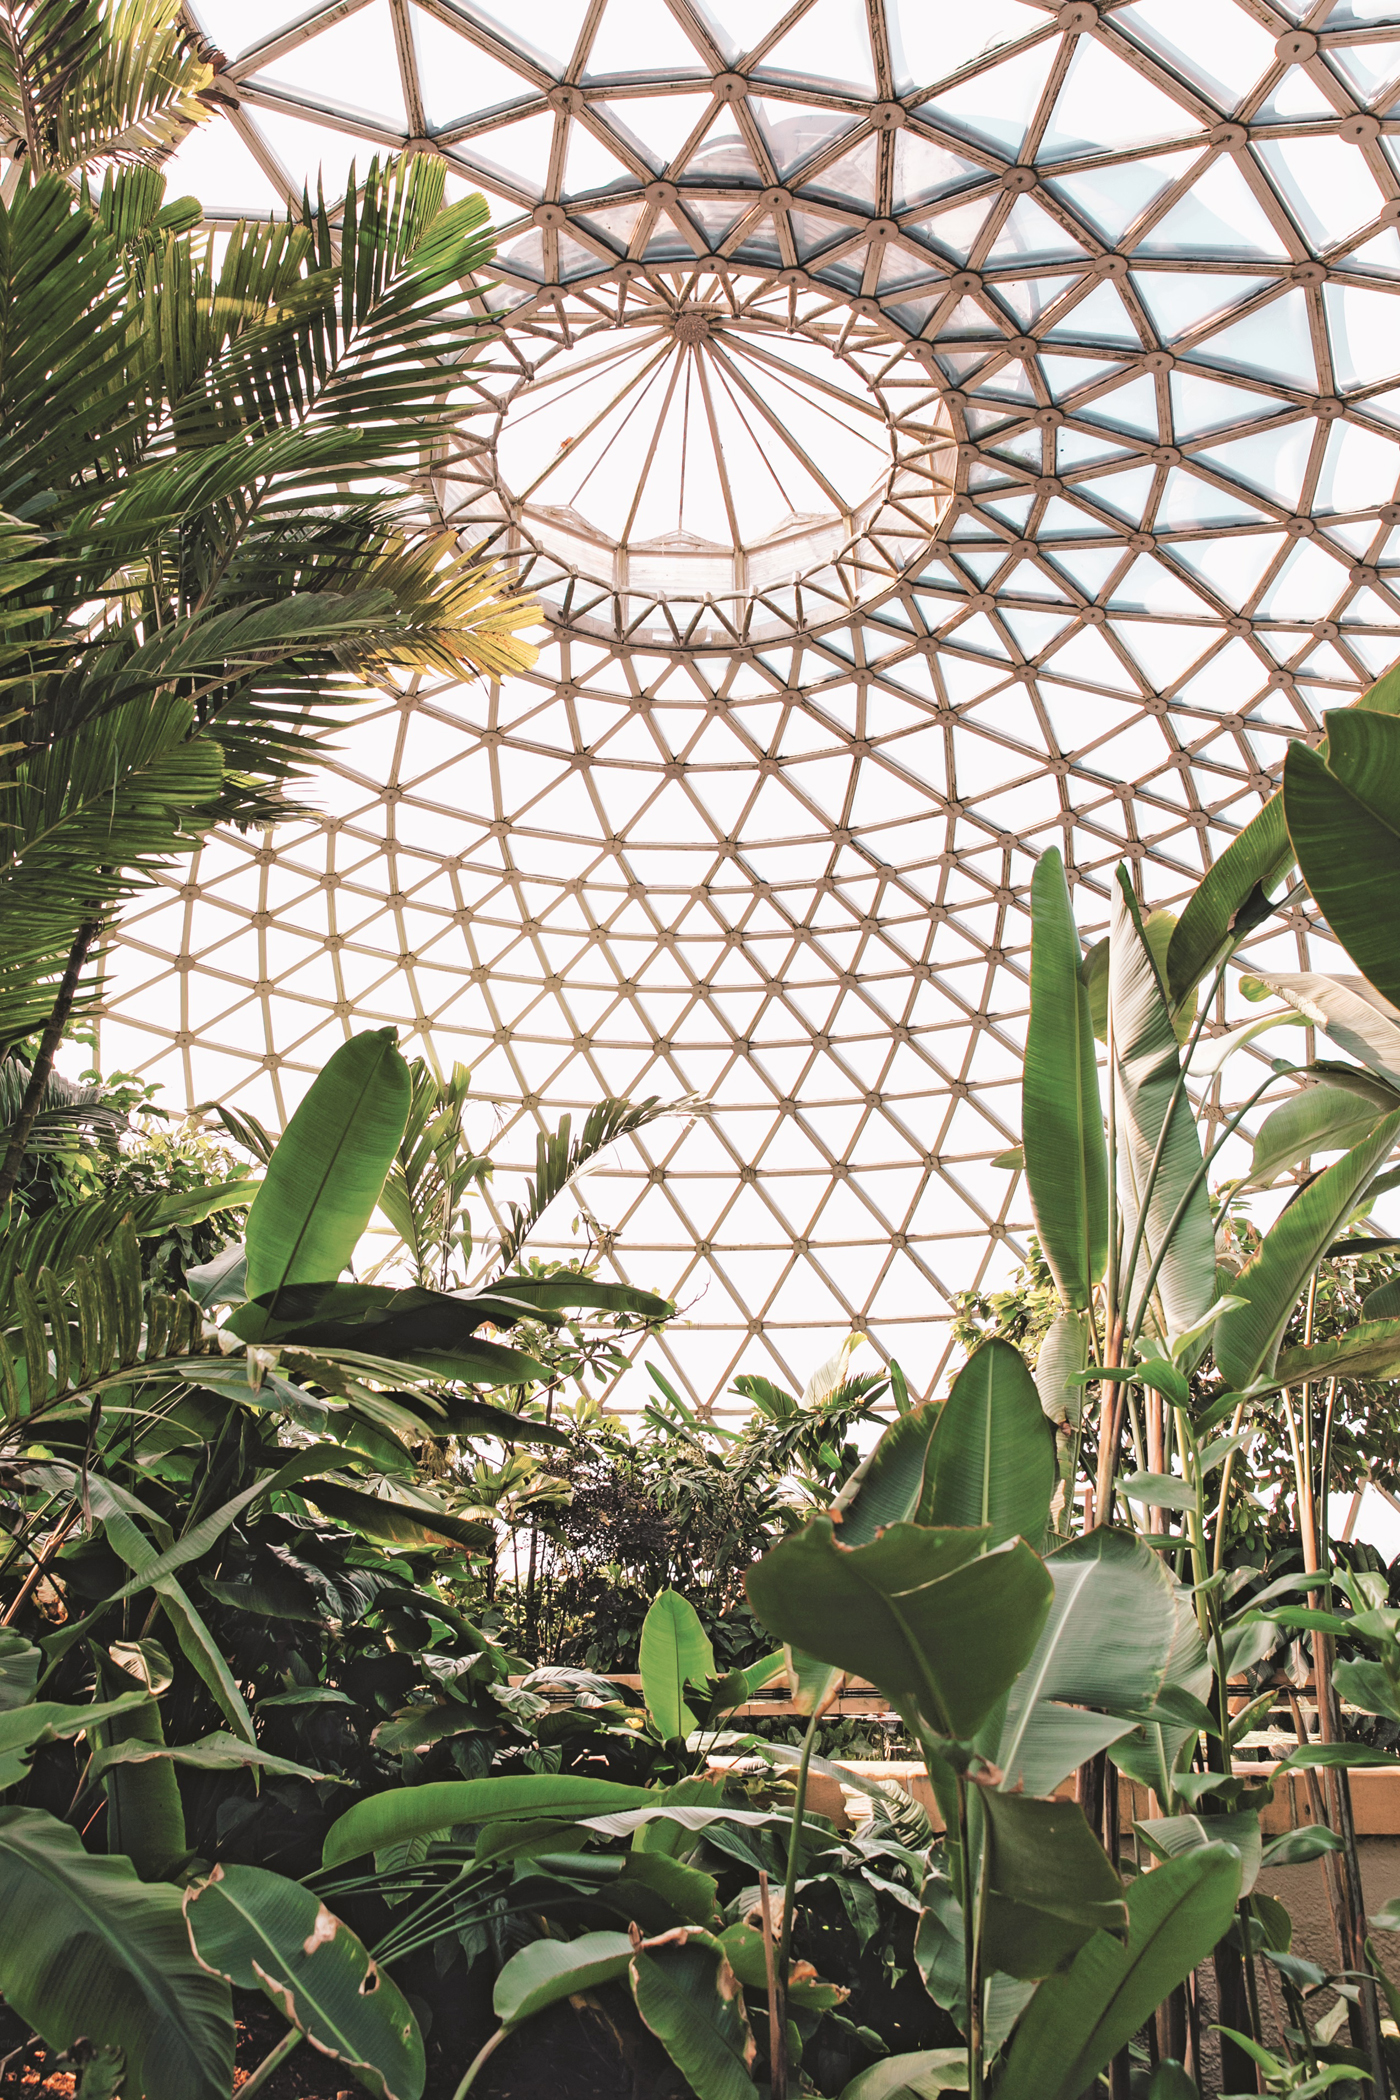 TROPICAL DISPLAY DOME, Brisbane Botanic Garden, Mount Coottha, Queensland, Australia. Photography copyright © India Hobson and Magnus Edmondson 2018.